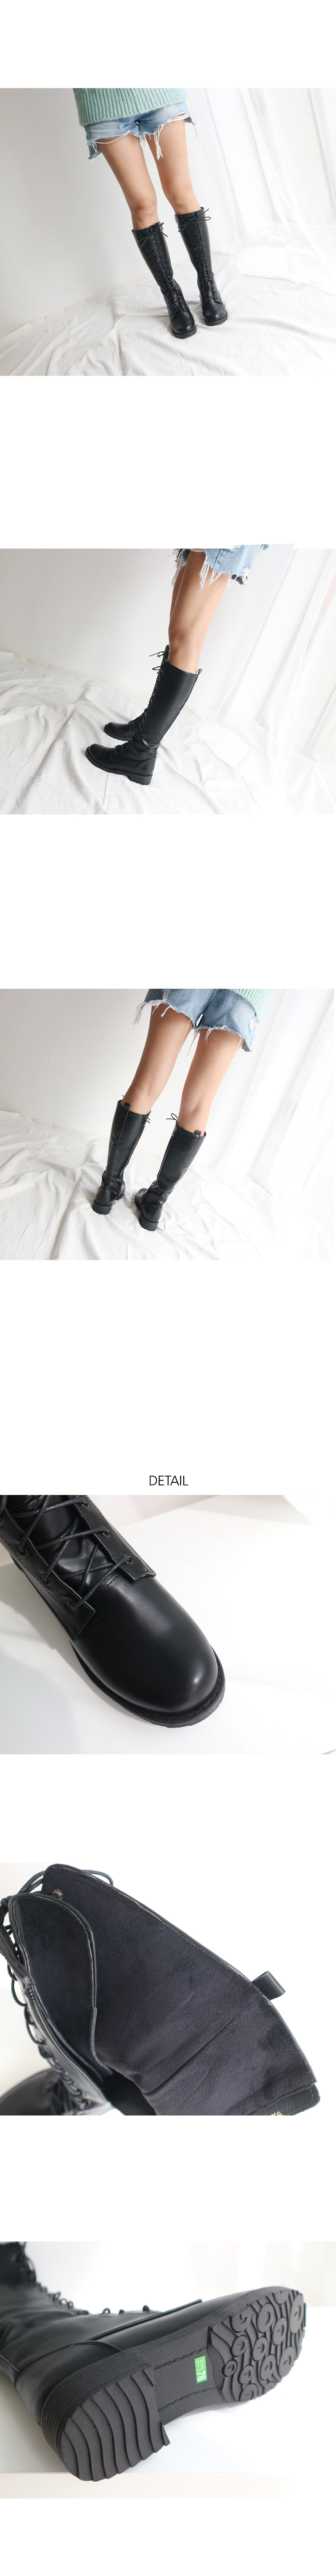 Loria lace-up long boots